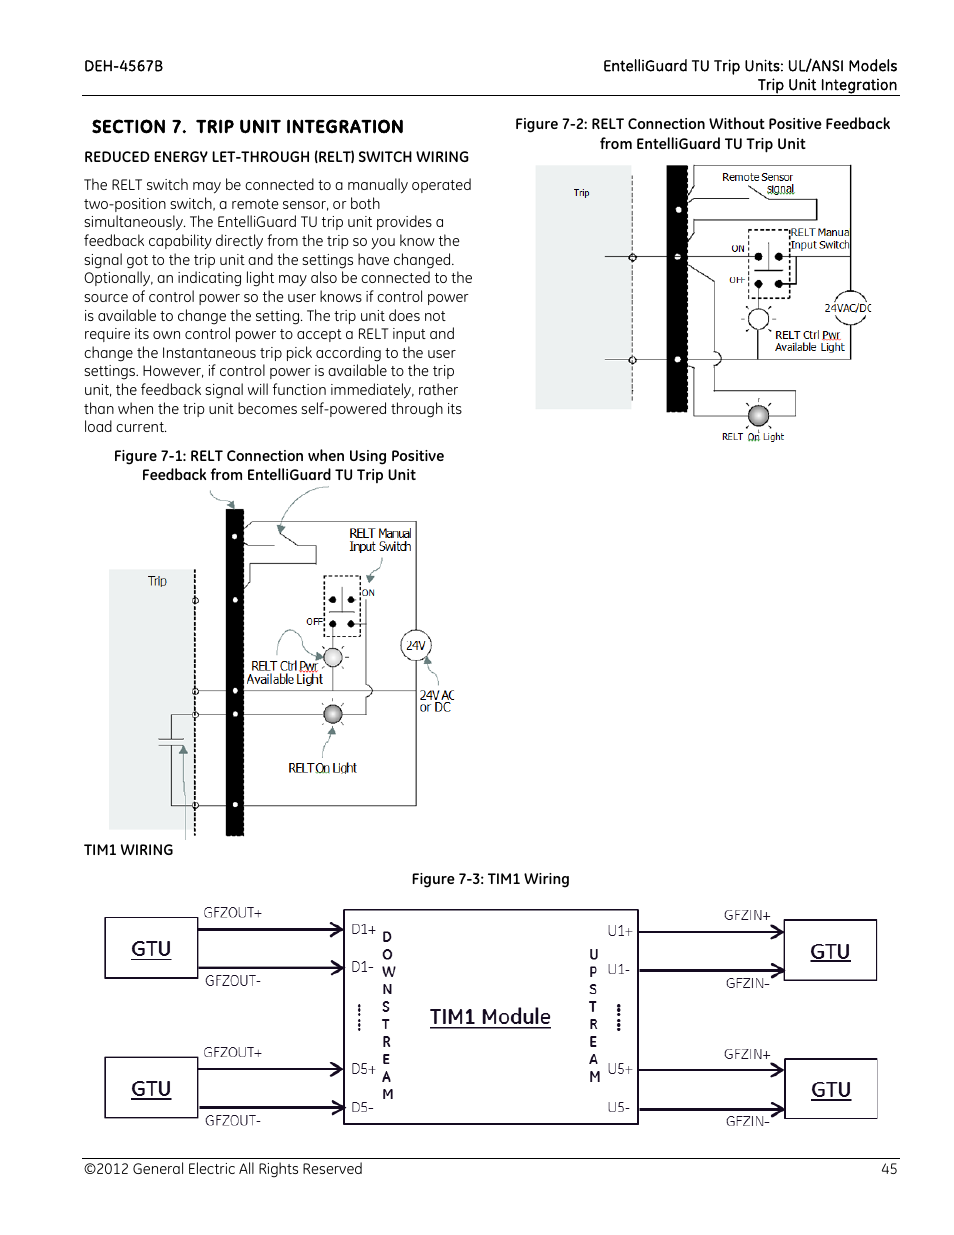 Section 7 Trip Unit Integration Reduced Energy Let Through Relt Industrial Switch Wiring Diagram Tim1 Ge Solutions Entelliguard Tu Units User Manual Page 55 106